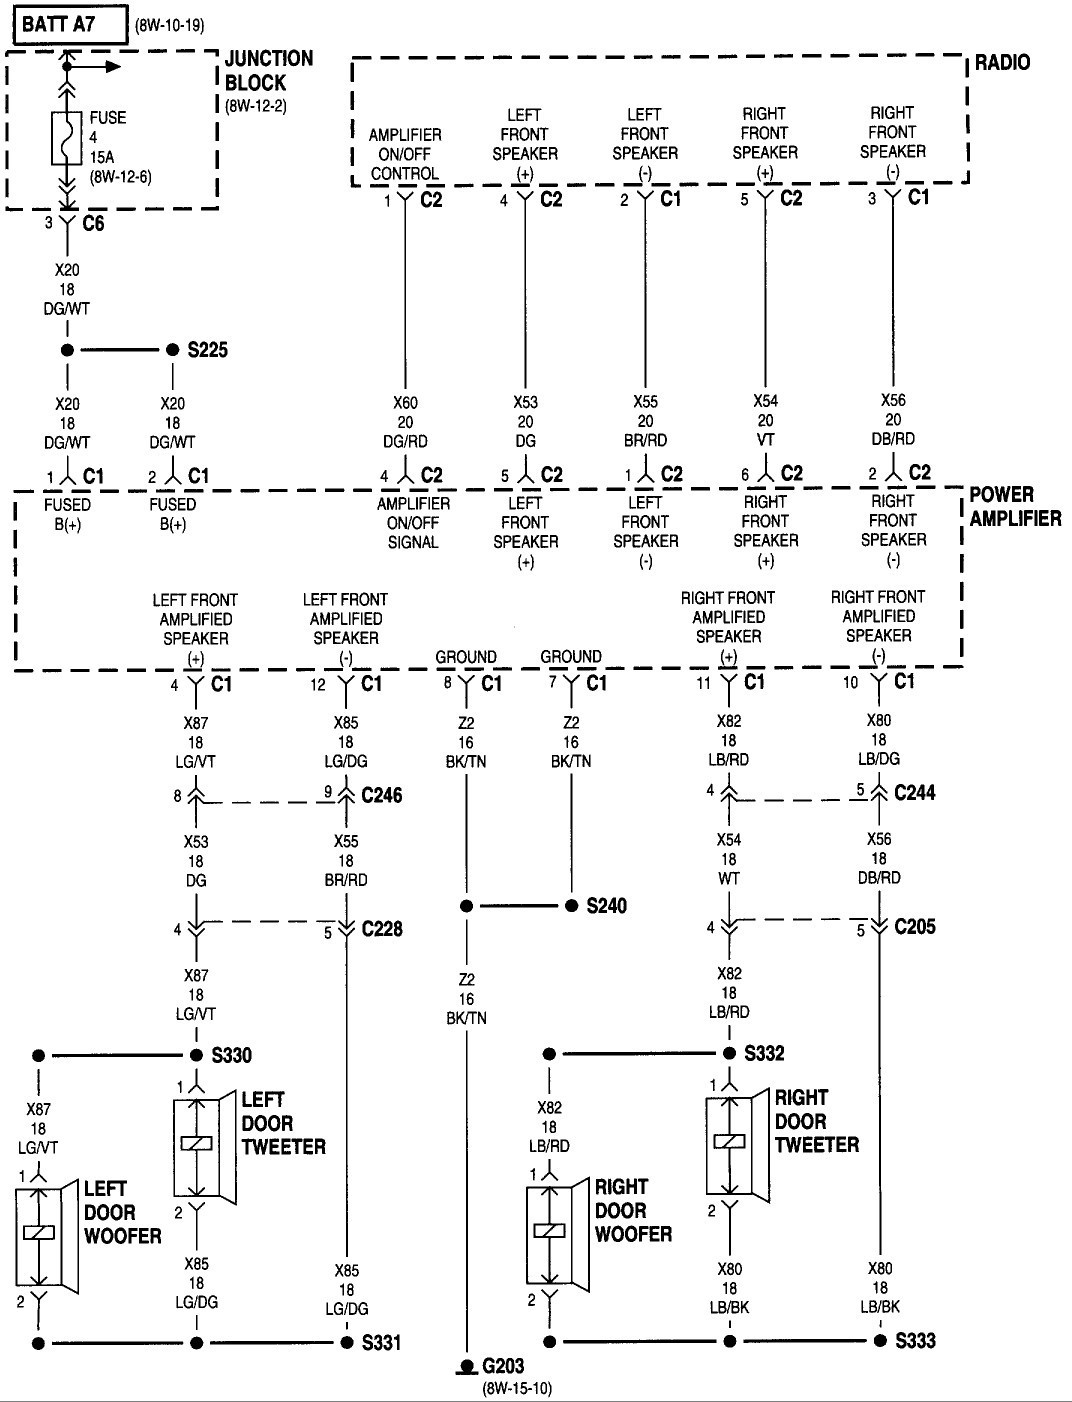 1998 Dodge Grand Caravan Fuse Box Diagram